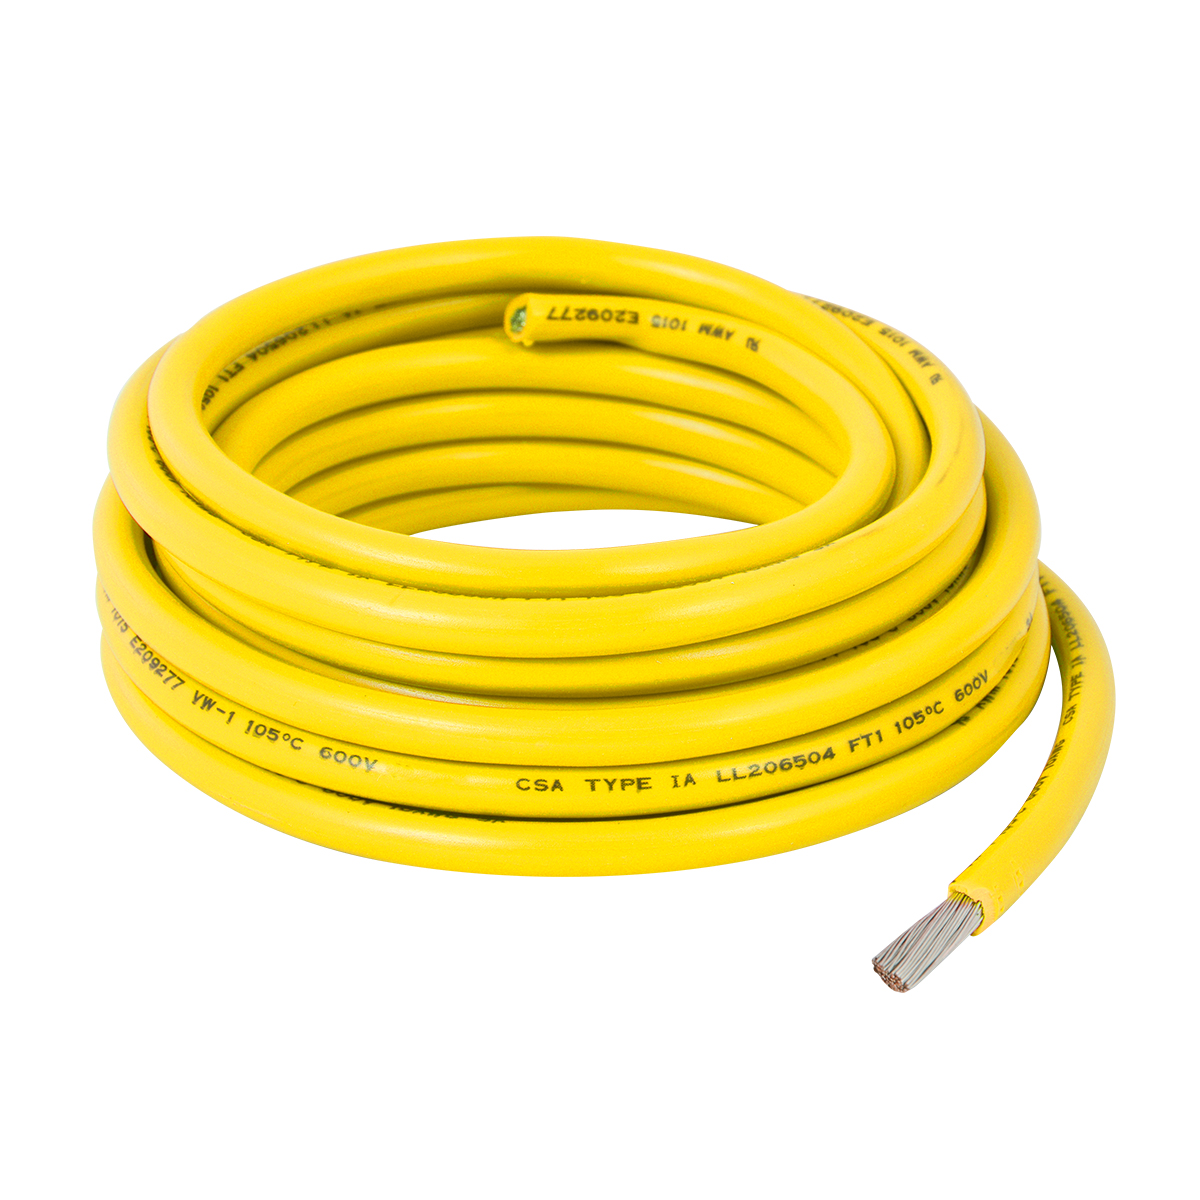 55034 Yello UL Listed Primary Wires in 10 Gauge